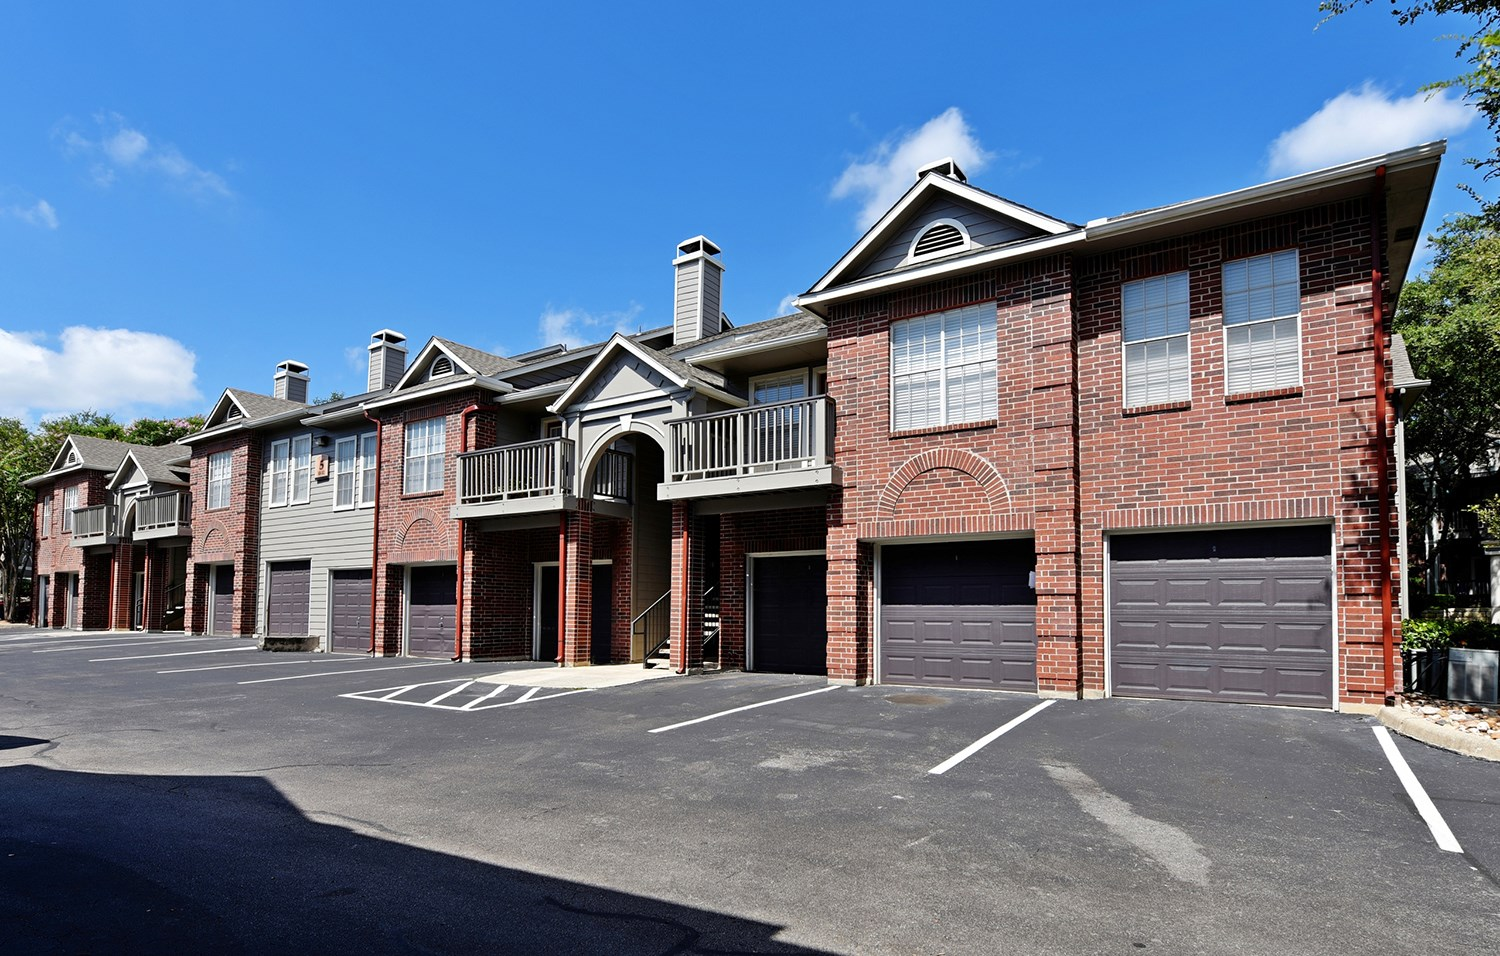 Attached Garages at Park at Walkers Ranch Apartments in San Antonio, TX